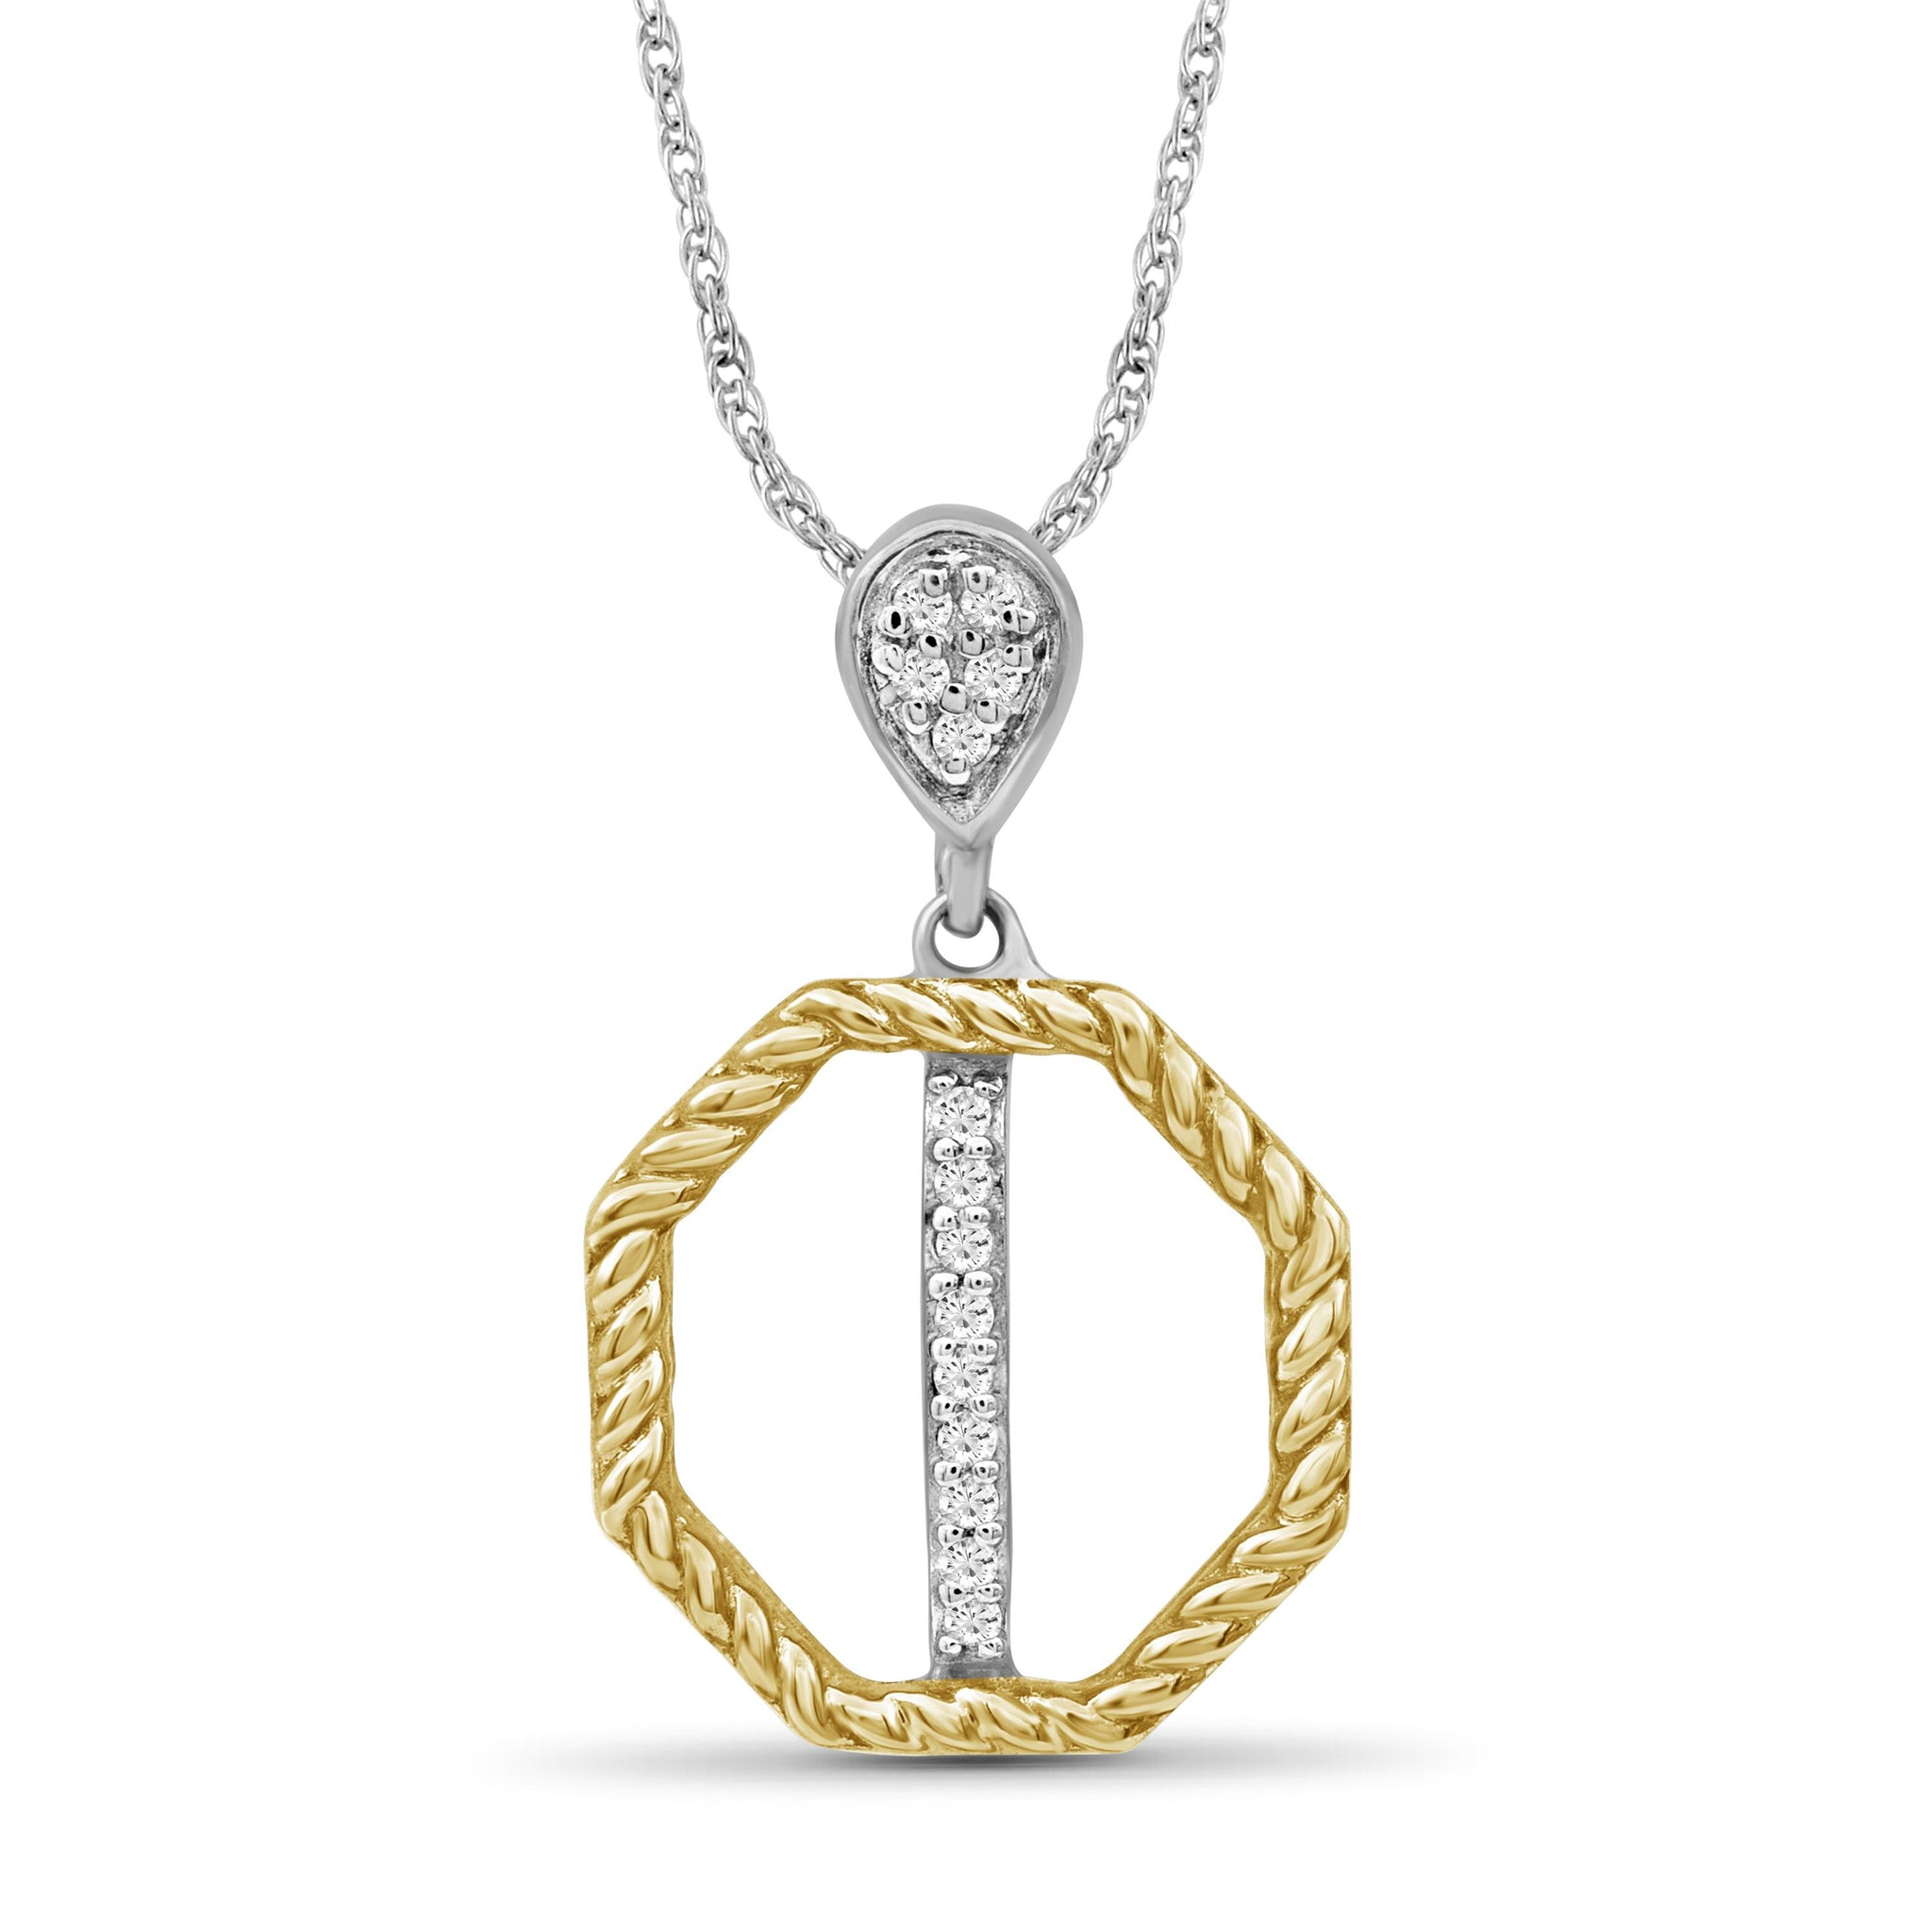 JewelonFire 1/20 Carat T.W. White Diamond Two Tone Sterling Silver Octagon Pendant